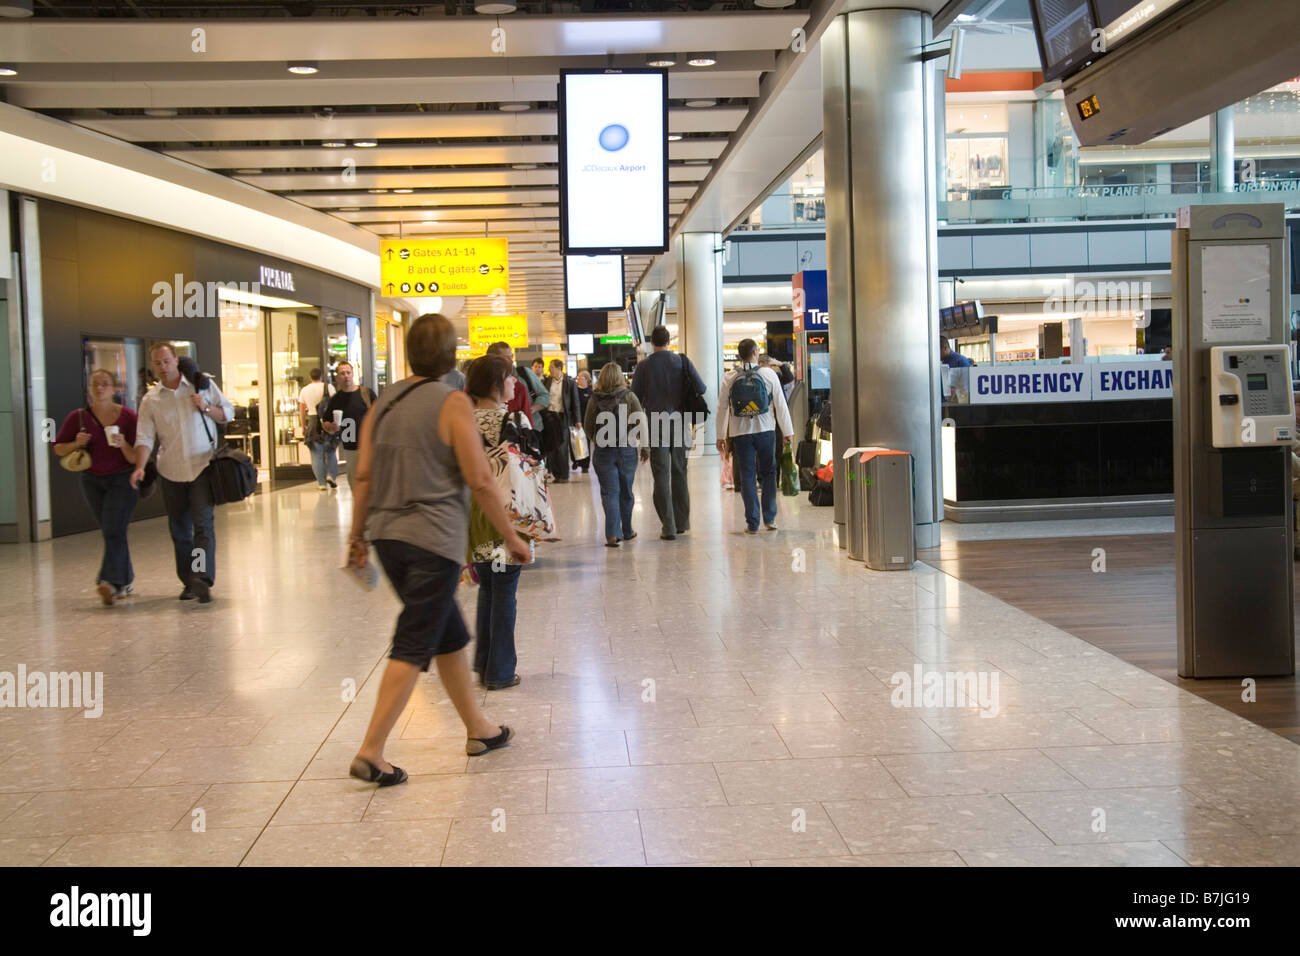 Heathrow Airport London England UK September Passengers hurrying to their gates in the Departure Lounge of Terminal - Stock Image